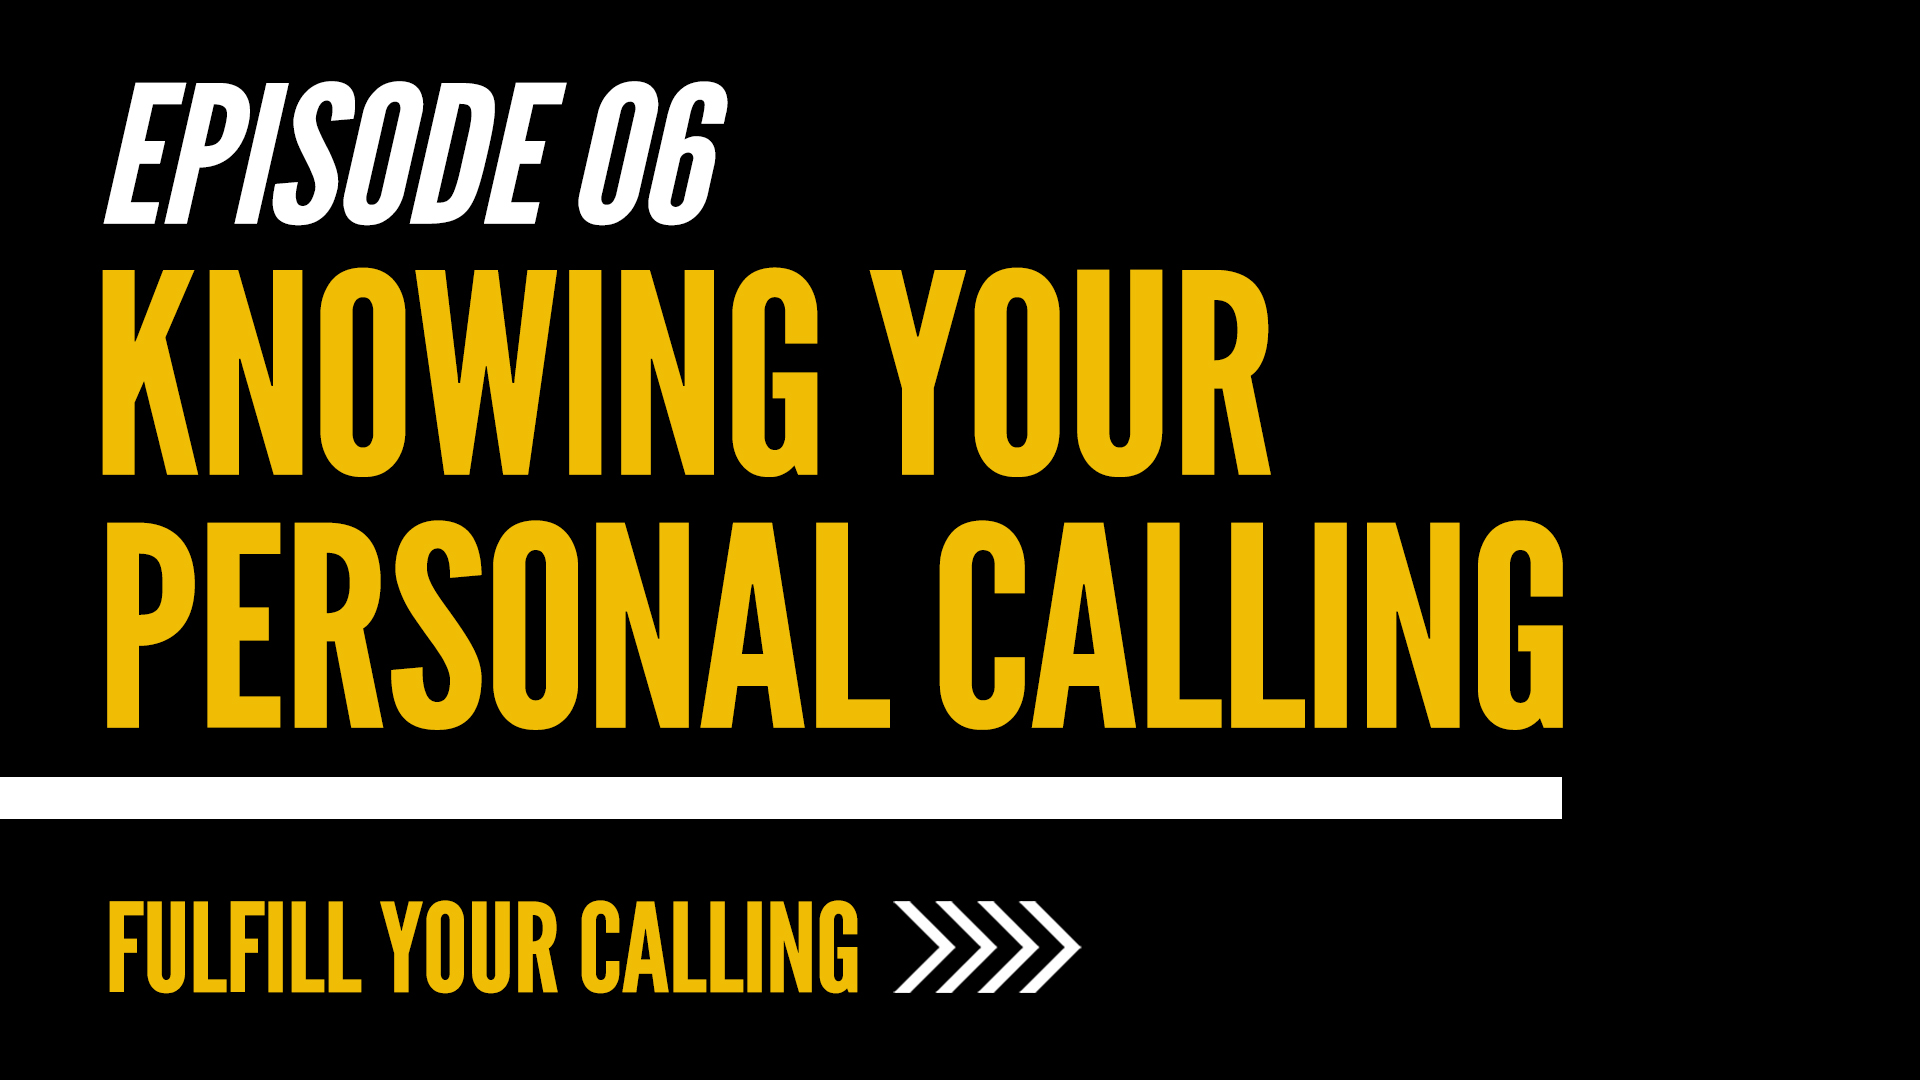 How to Fulfill Your Calling - Episode 6 with David Steele